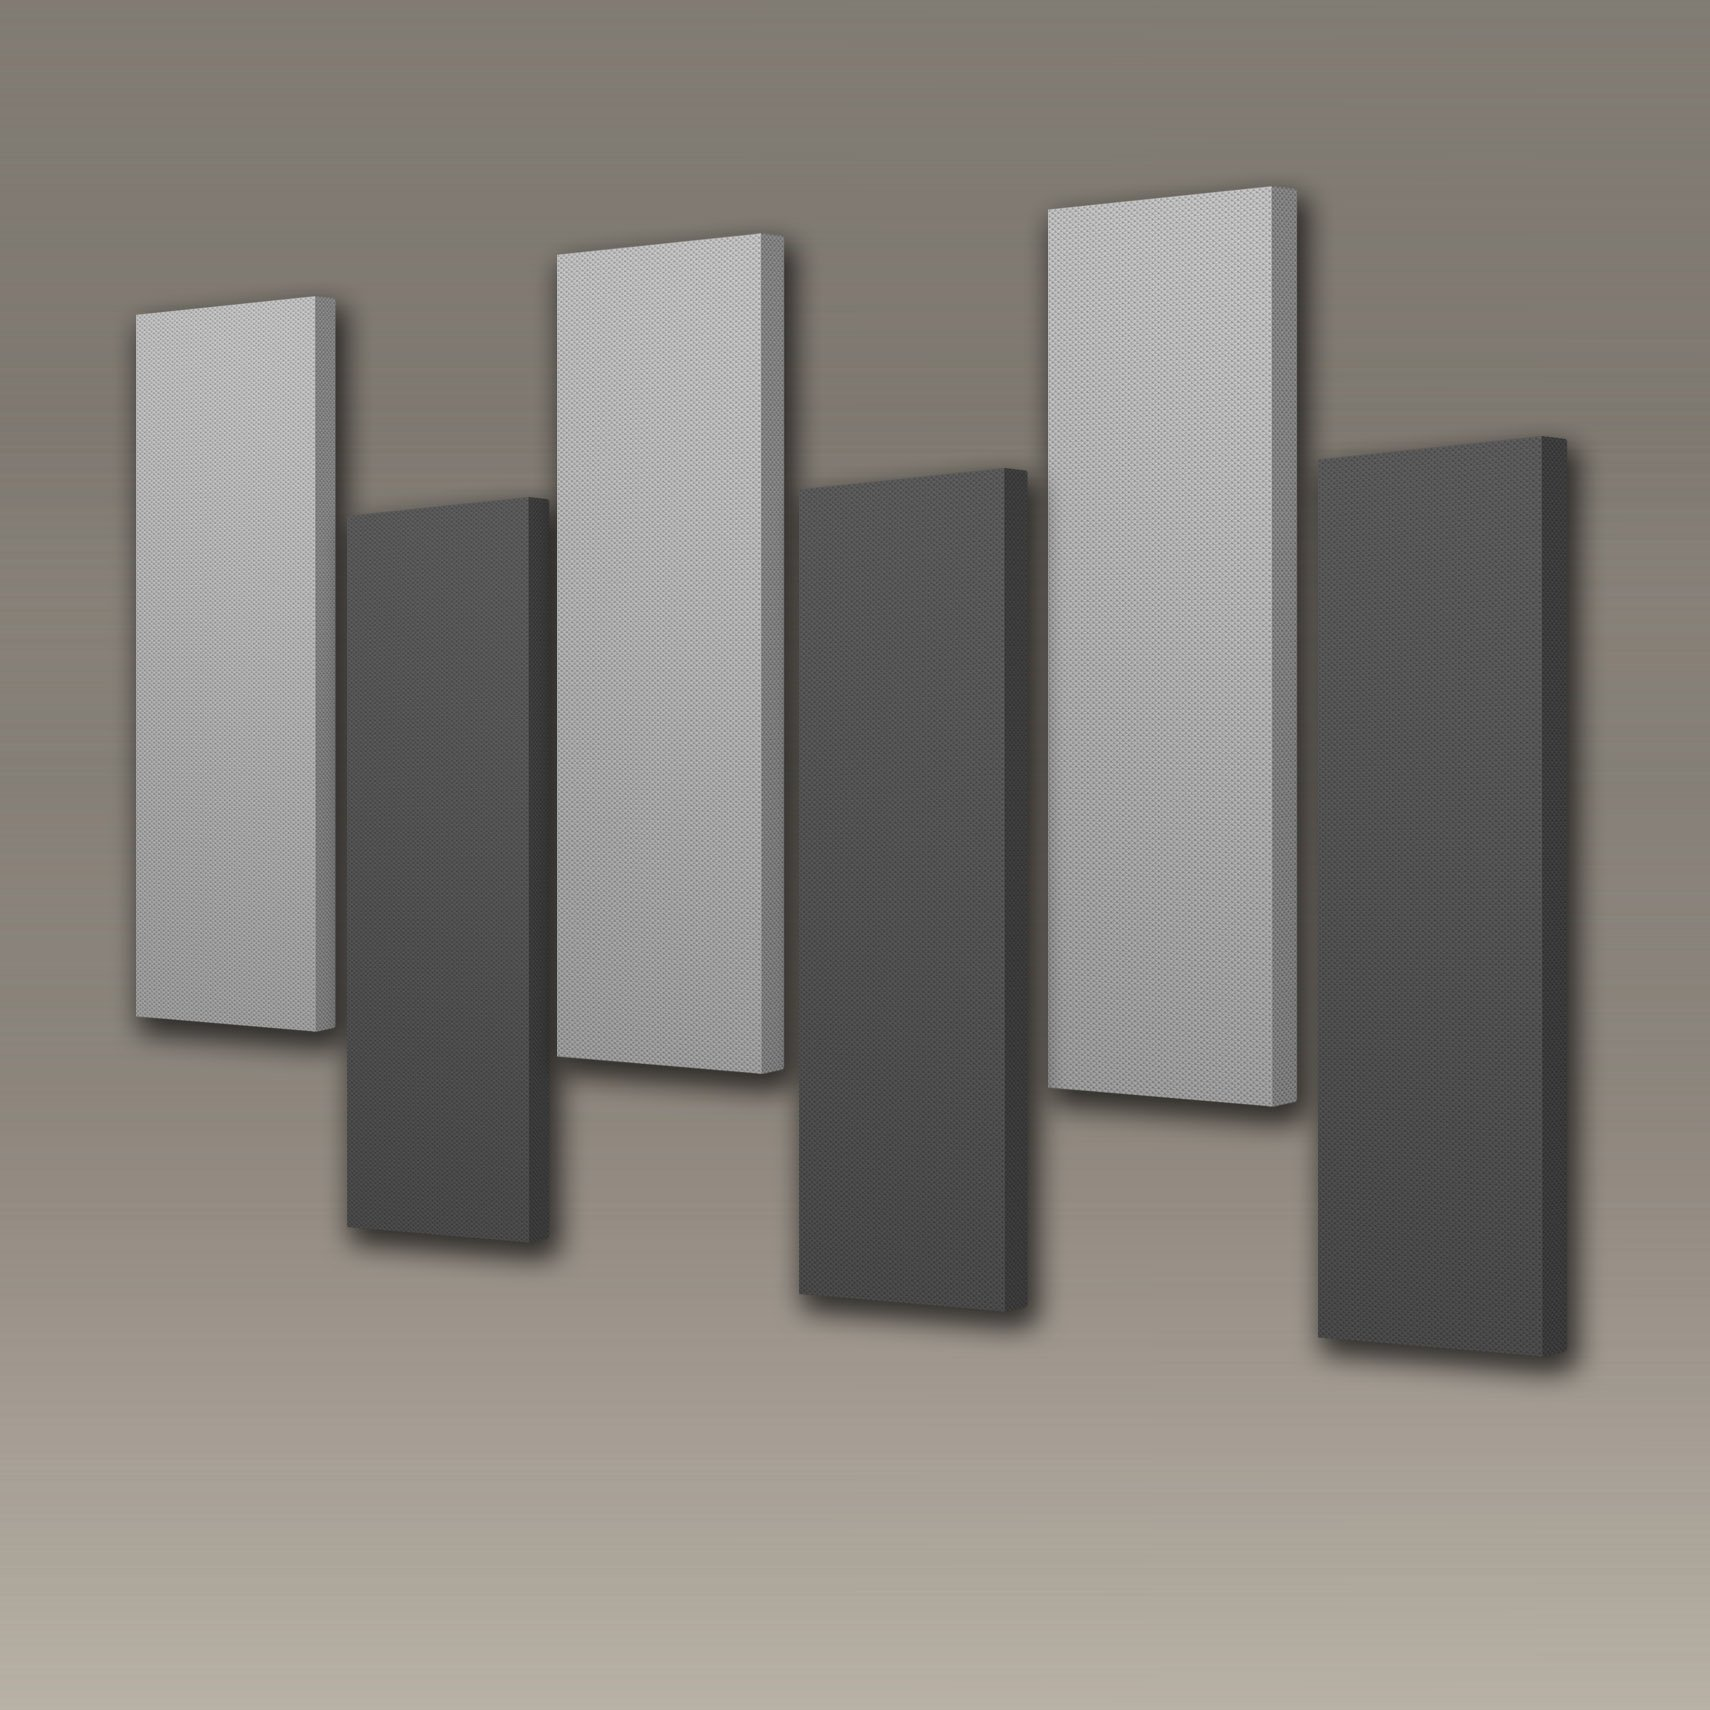 Acoustimac Stagger Acoustic Design Pack: 6 Pcs 3'x1'x2'' gray & charcoal